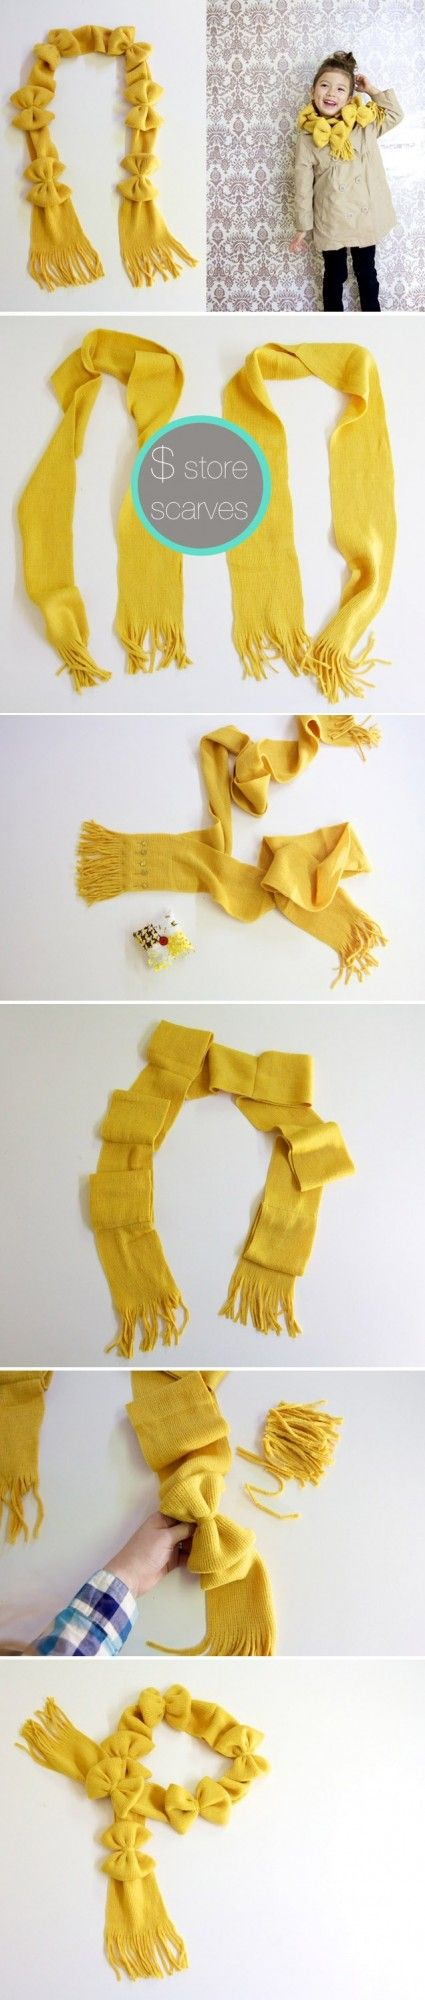 #scarves #bows #fall #winter